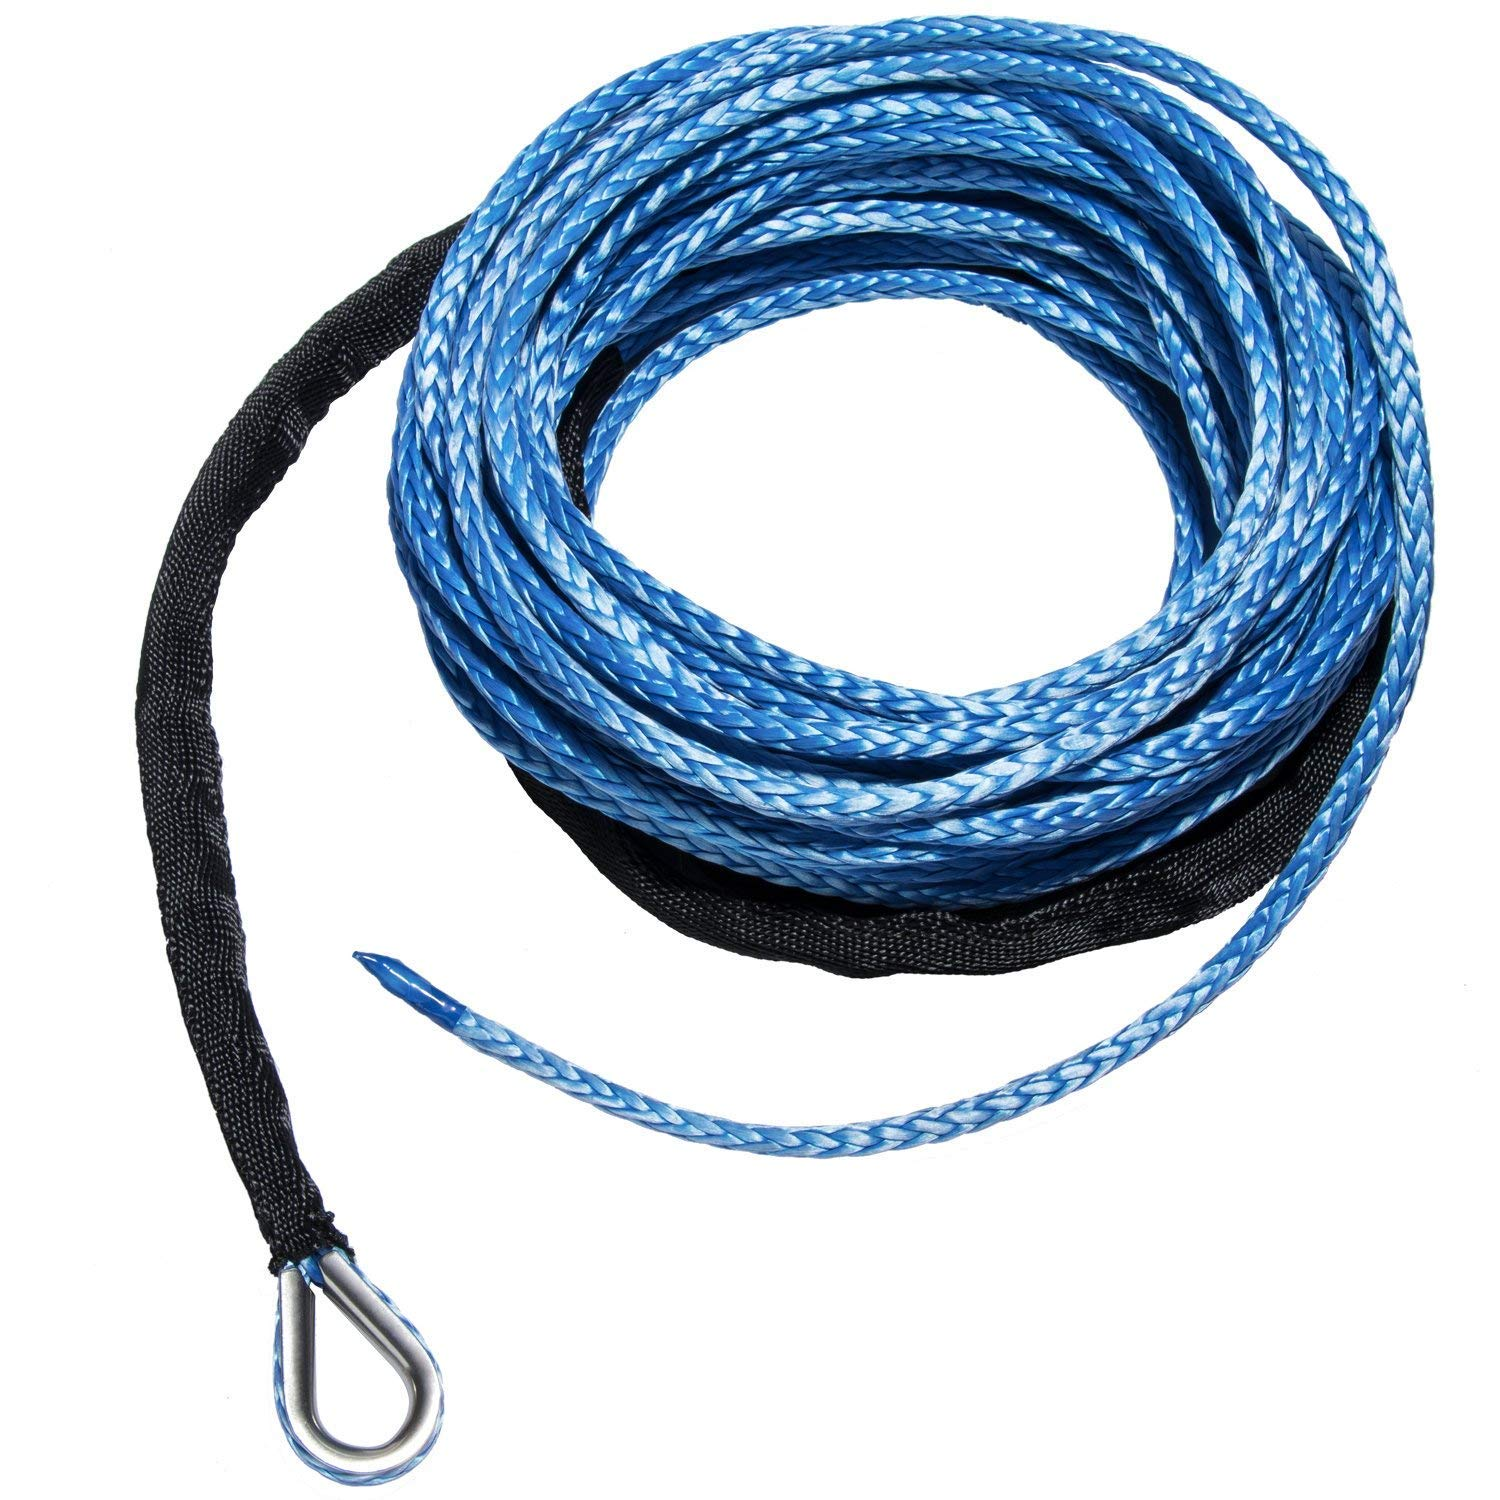 Yoursme Nylon Synthetic Winch Cable Rope with Sheath for SUV ATV UTV Winches Truck Boat Ramsey Car Blue 1//4 x 50-7500LB+